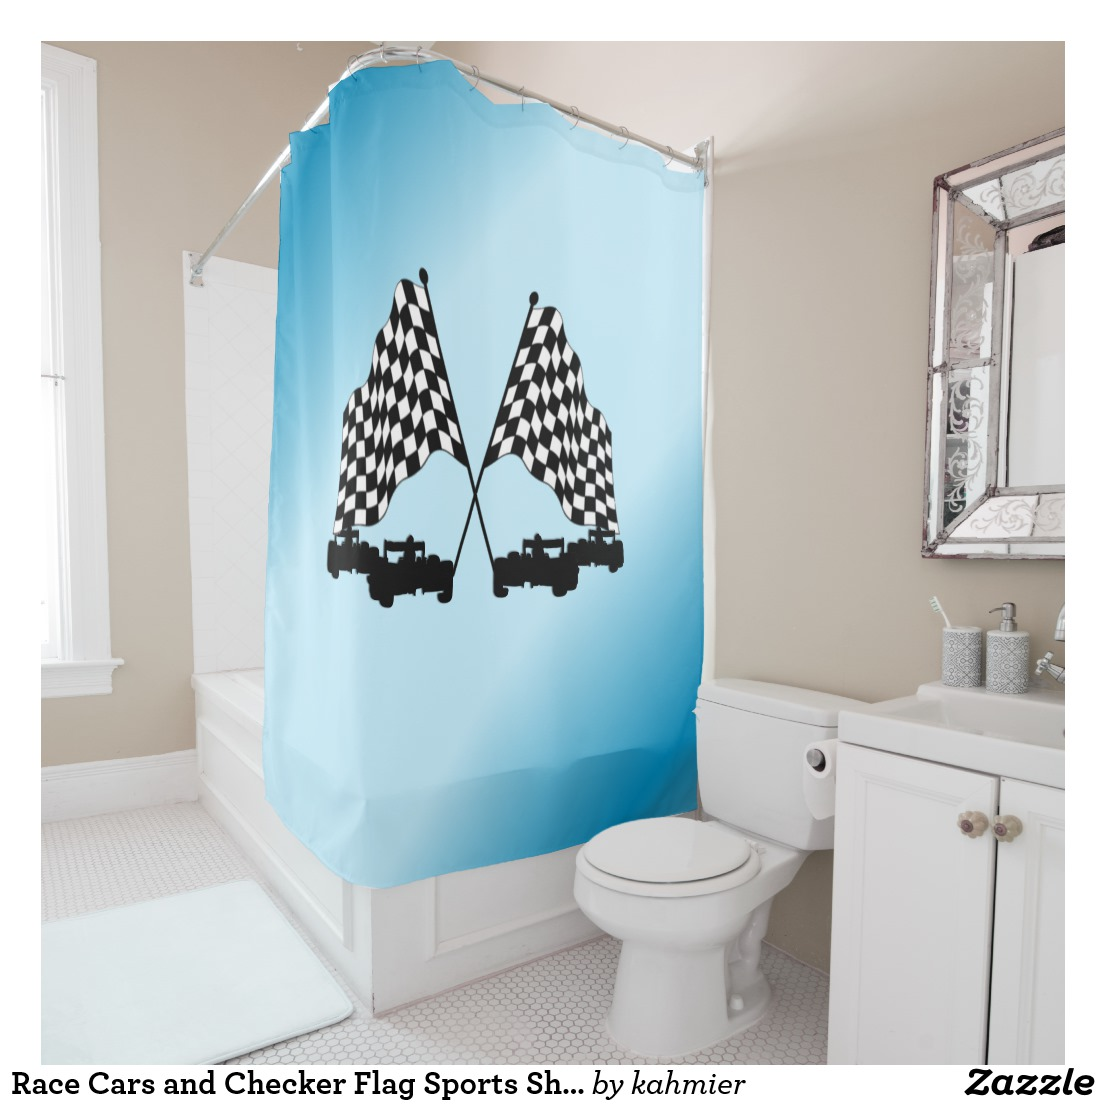 Race Cars and Checker Flag Sports Shower Curtain